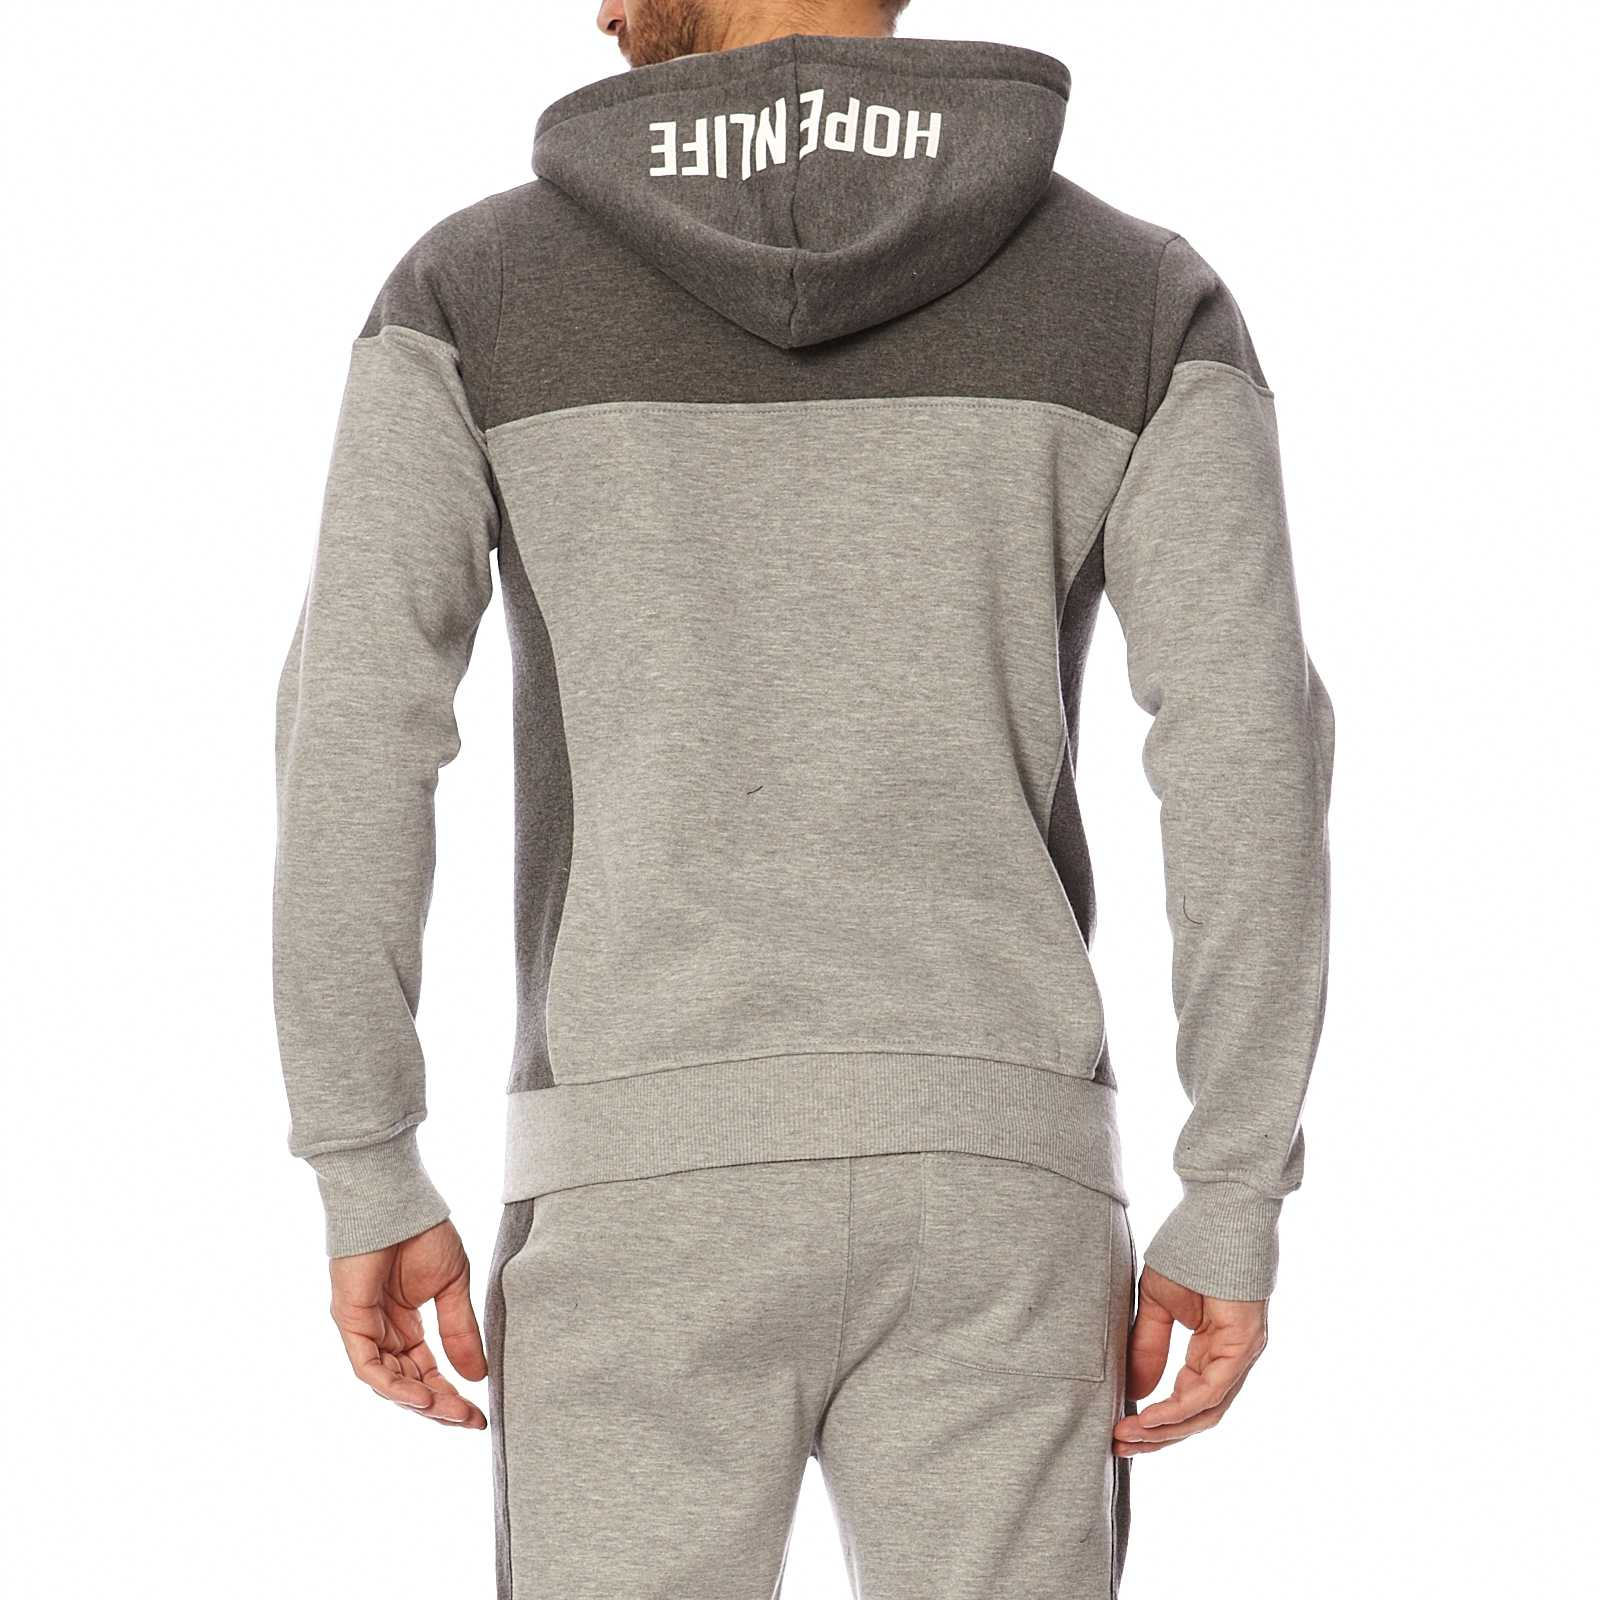 Life Gris N a V Capuche Homme MagdaSweat Hope Chine LSc4jRq3A5